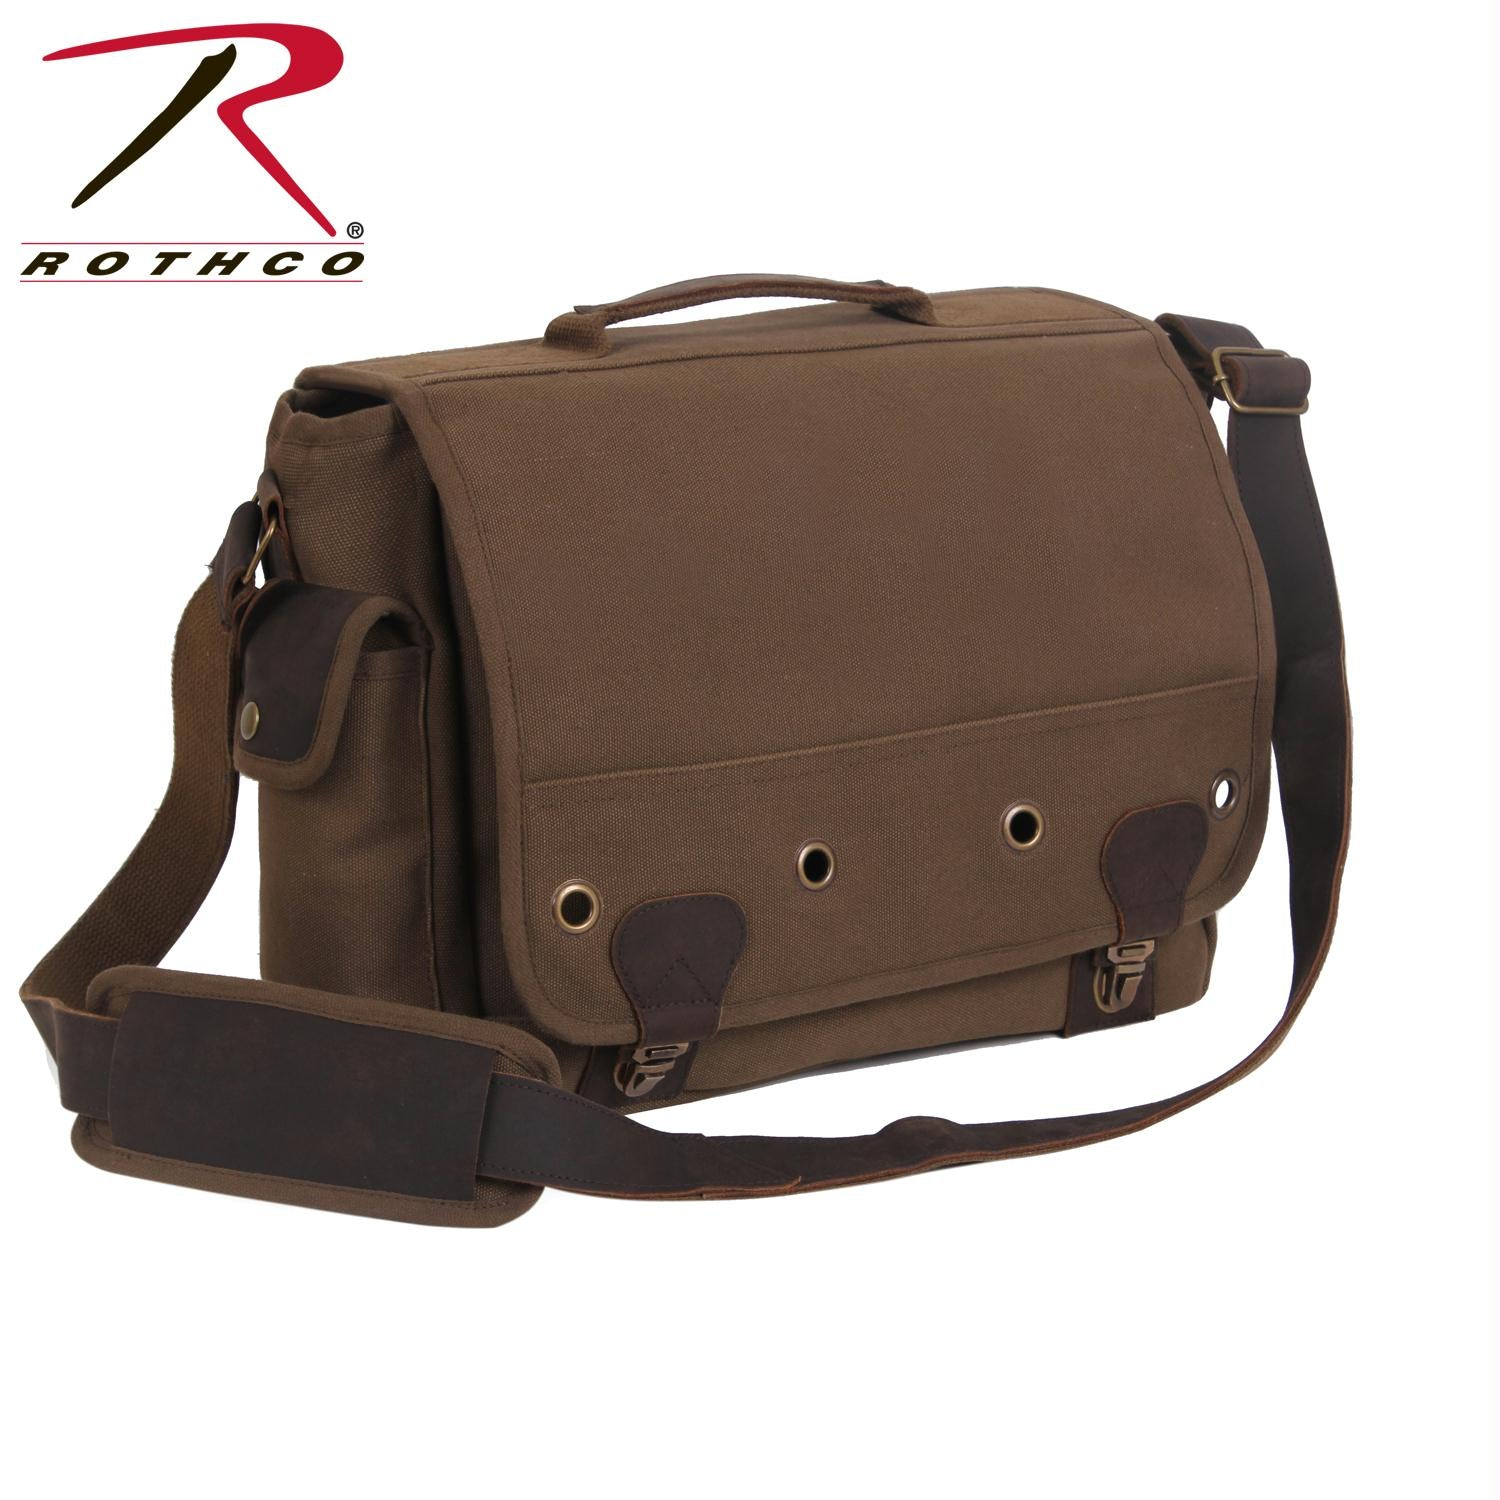 Rothco Canvas Trailblazer Laptop Bag